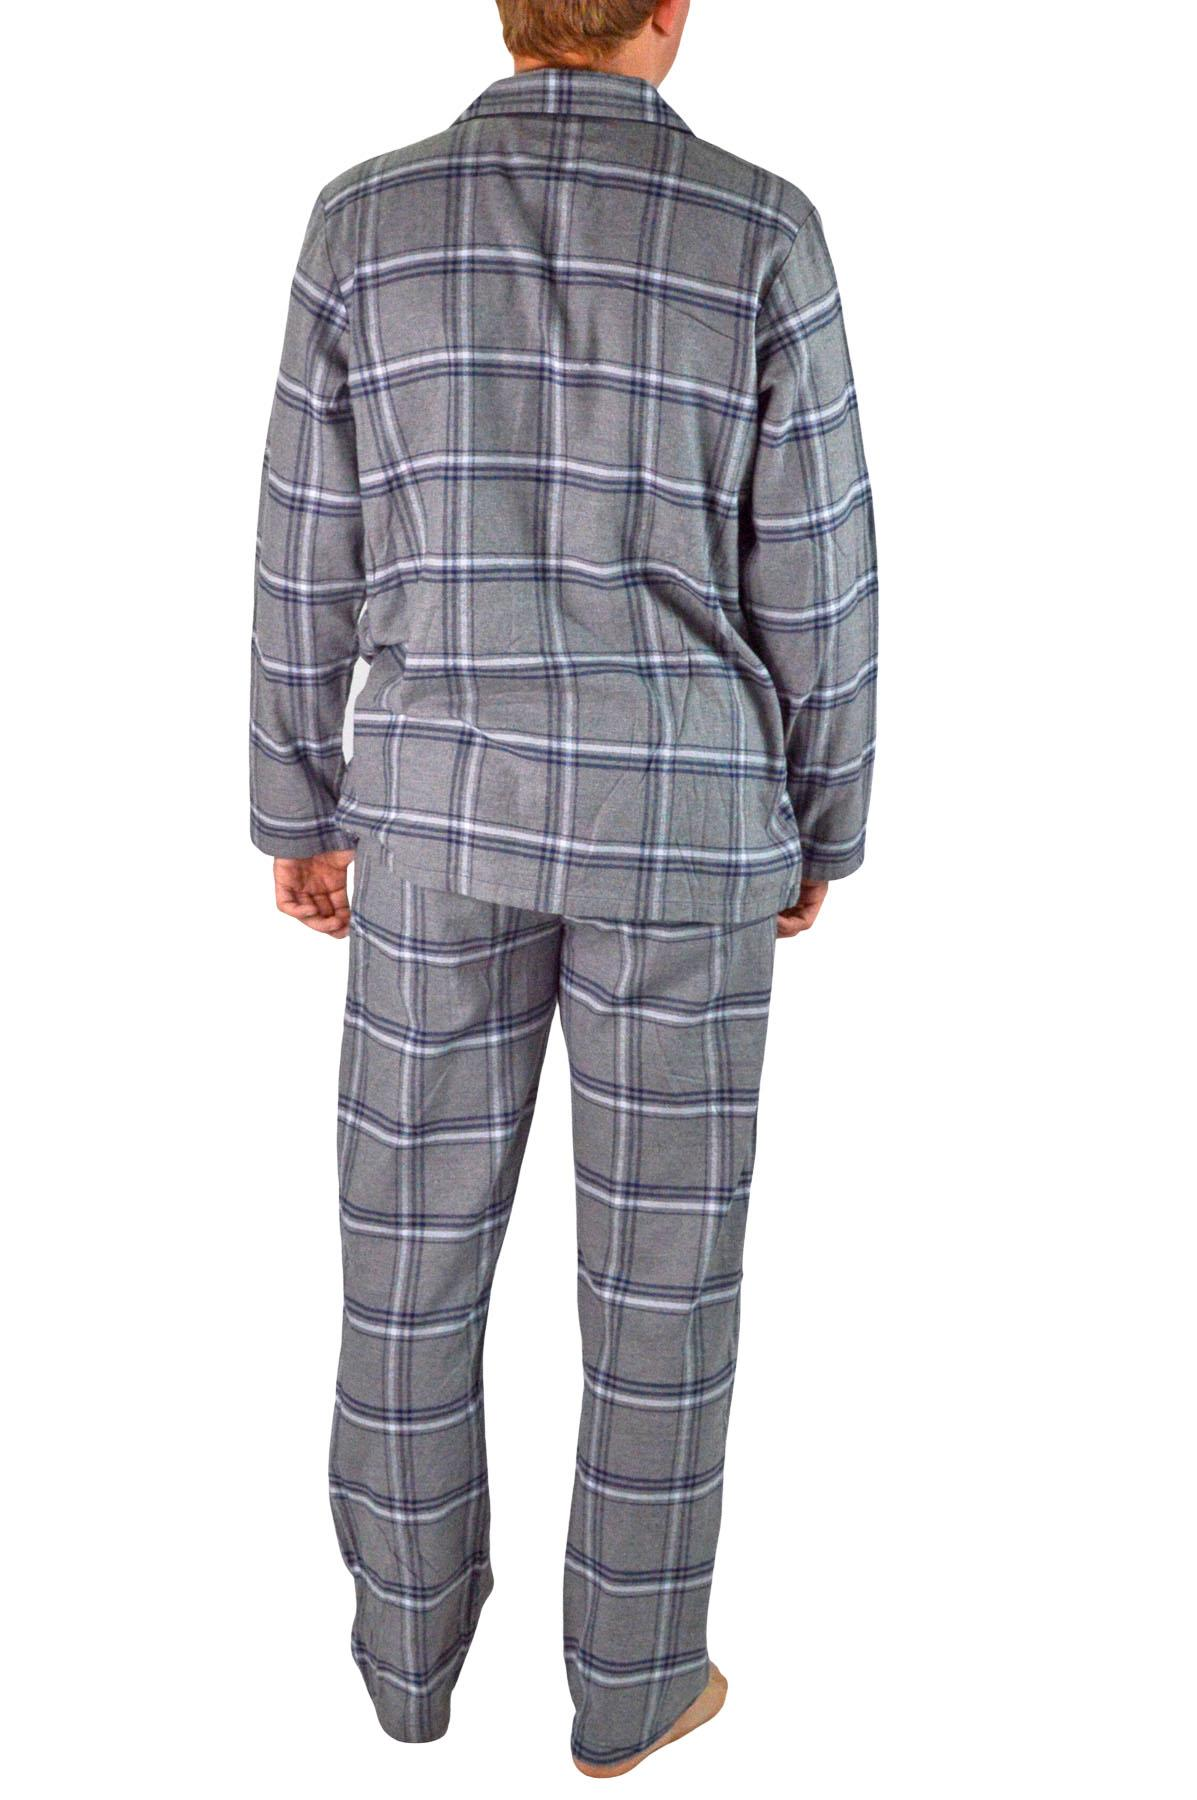 NEW-Mens-Brushed-Pure-Cotton-Check-Pyjamas-Flannelette-PJ-Set-in-Blue-Red-Grey thumbnail 9